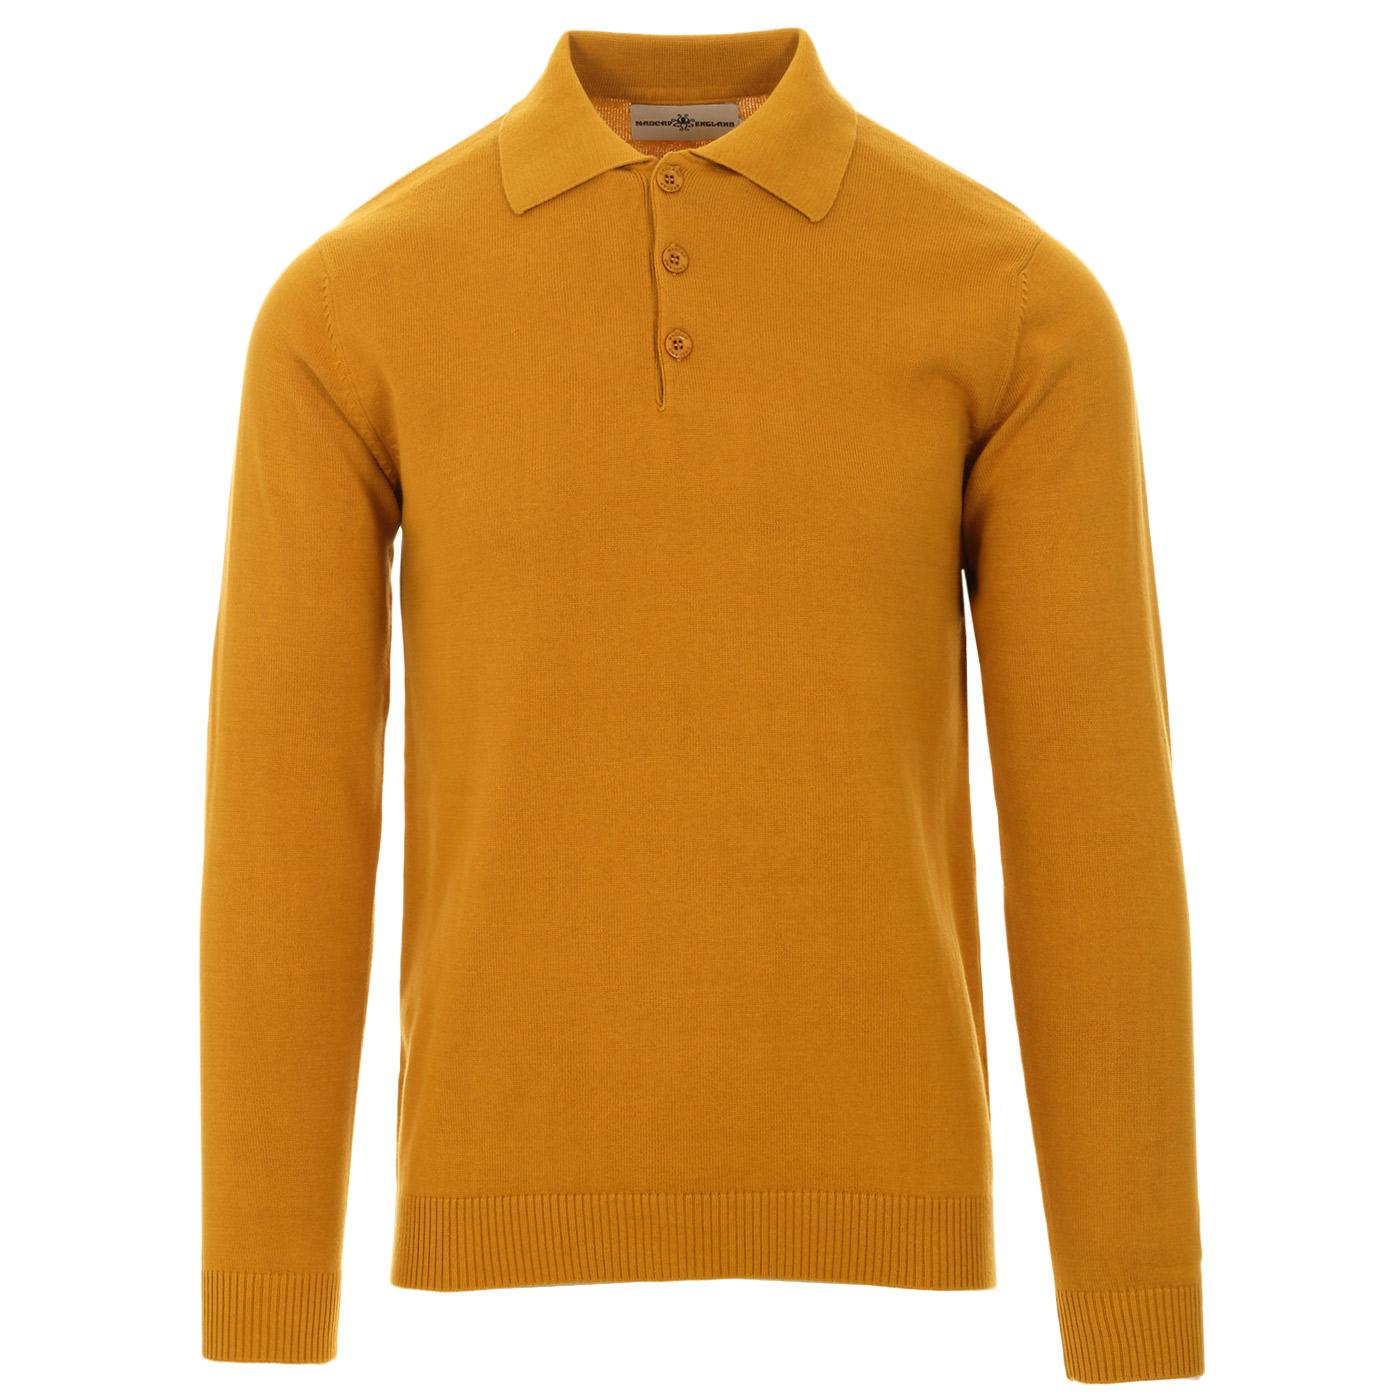 Madcap England Brando 60s Mod Long Sleeve Knitted Polo Shirt in Harvest Gold